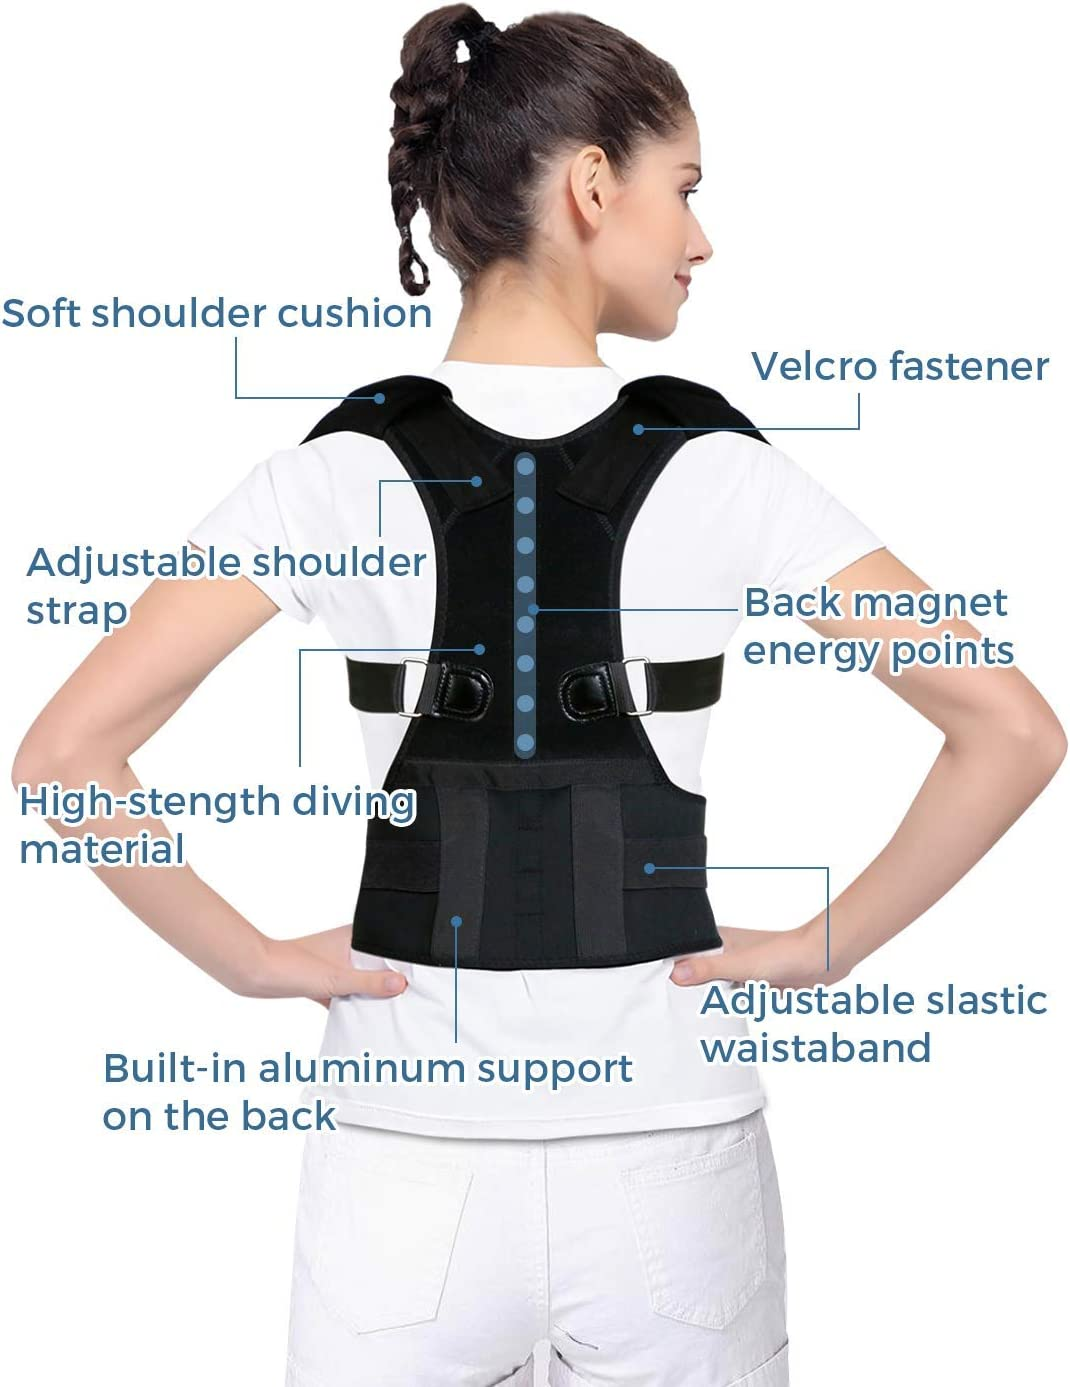 Posture Corrector for Women and Men KarmaRebirth Back Brace with Fully Adjustable Straps Shoulder Cushion Improves Posture Provides Lumbar Support Relieve Lower and Upper Back Pain(S)